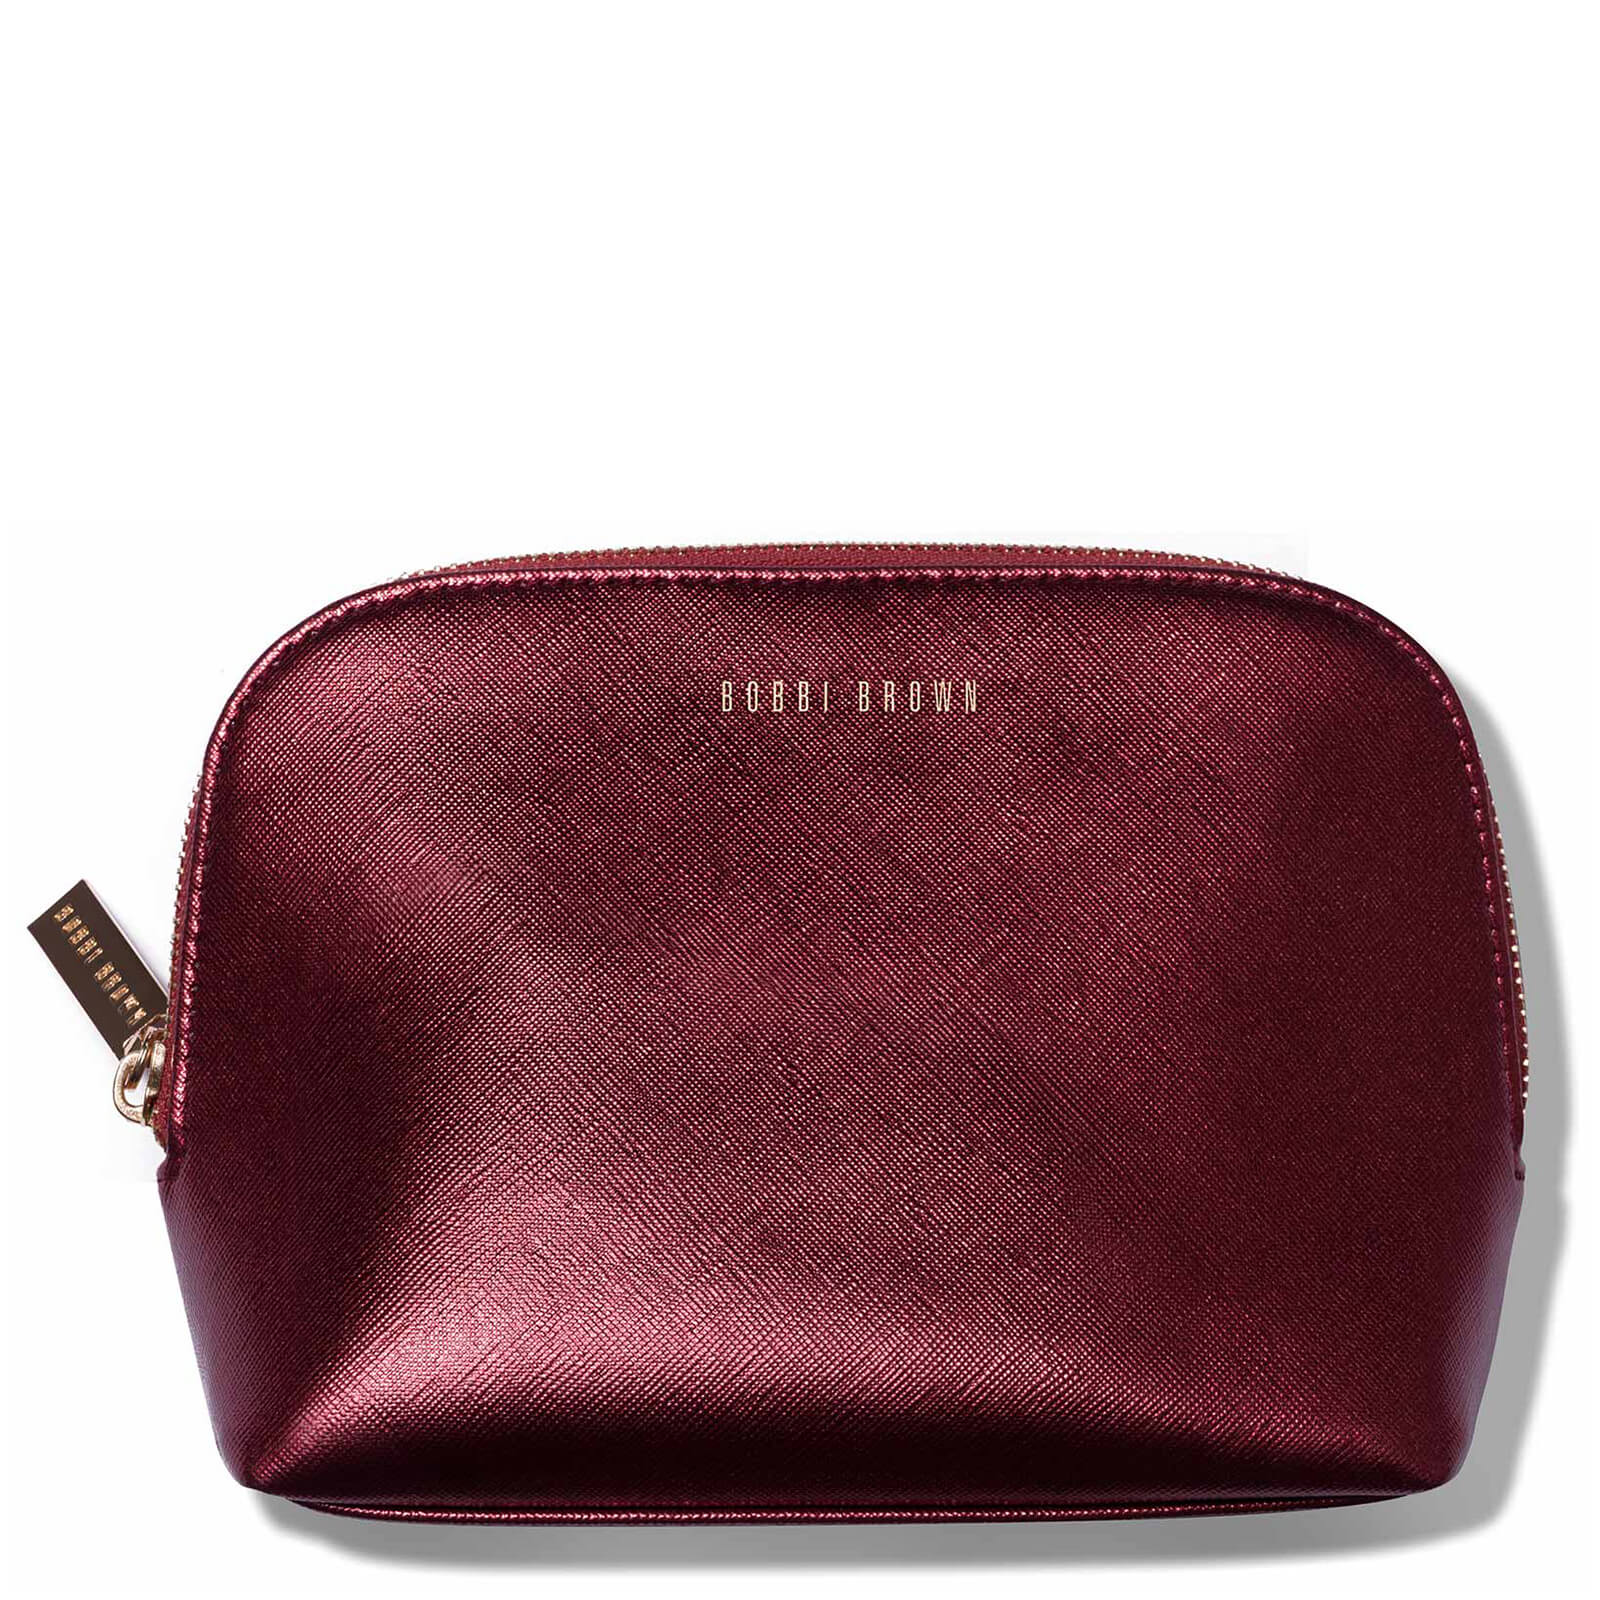 Description Wrap Up Your Makeup With The Bobbi Brown Small Cosmetic Bag